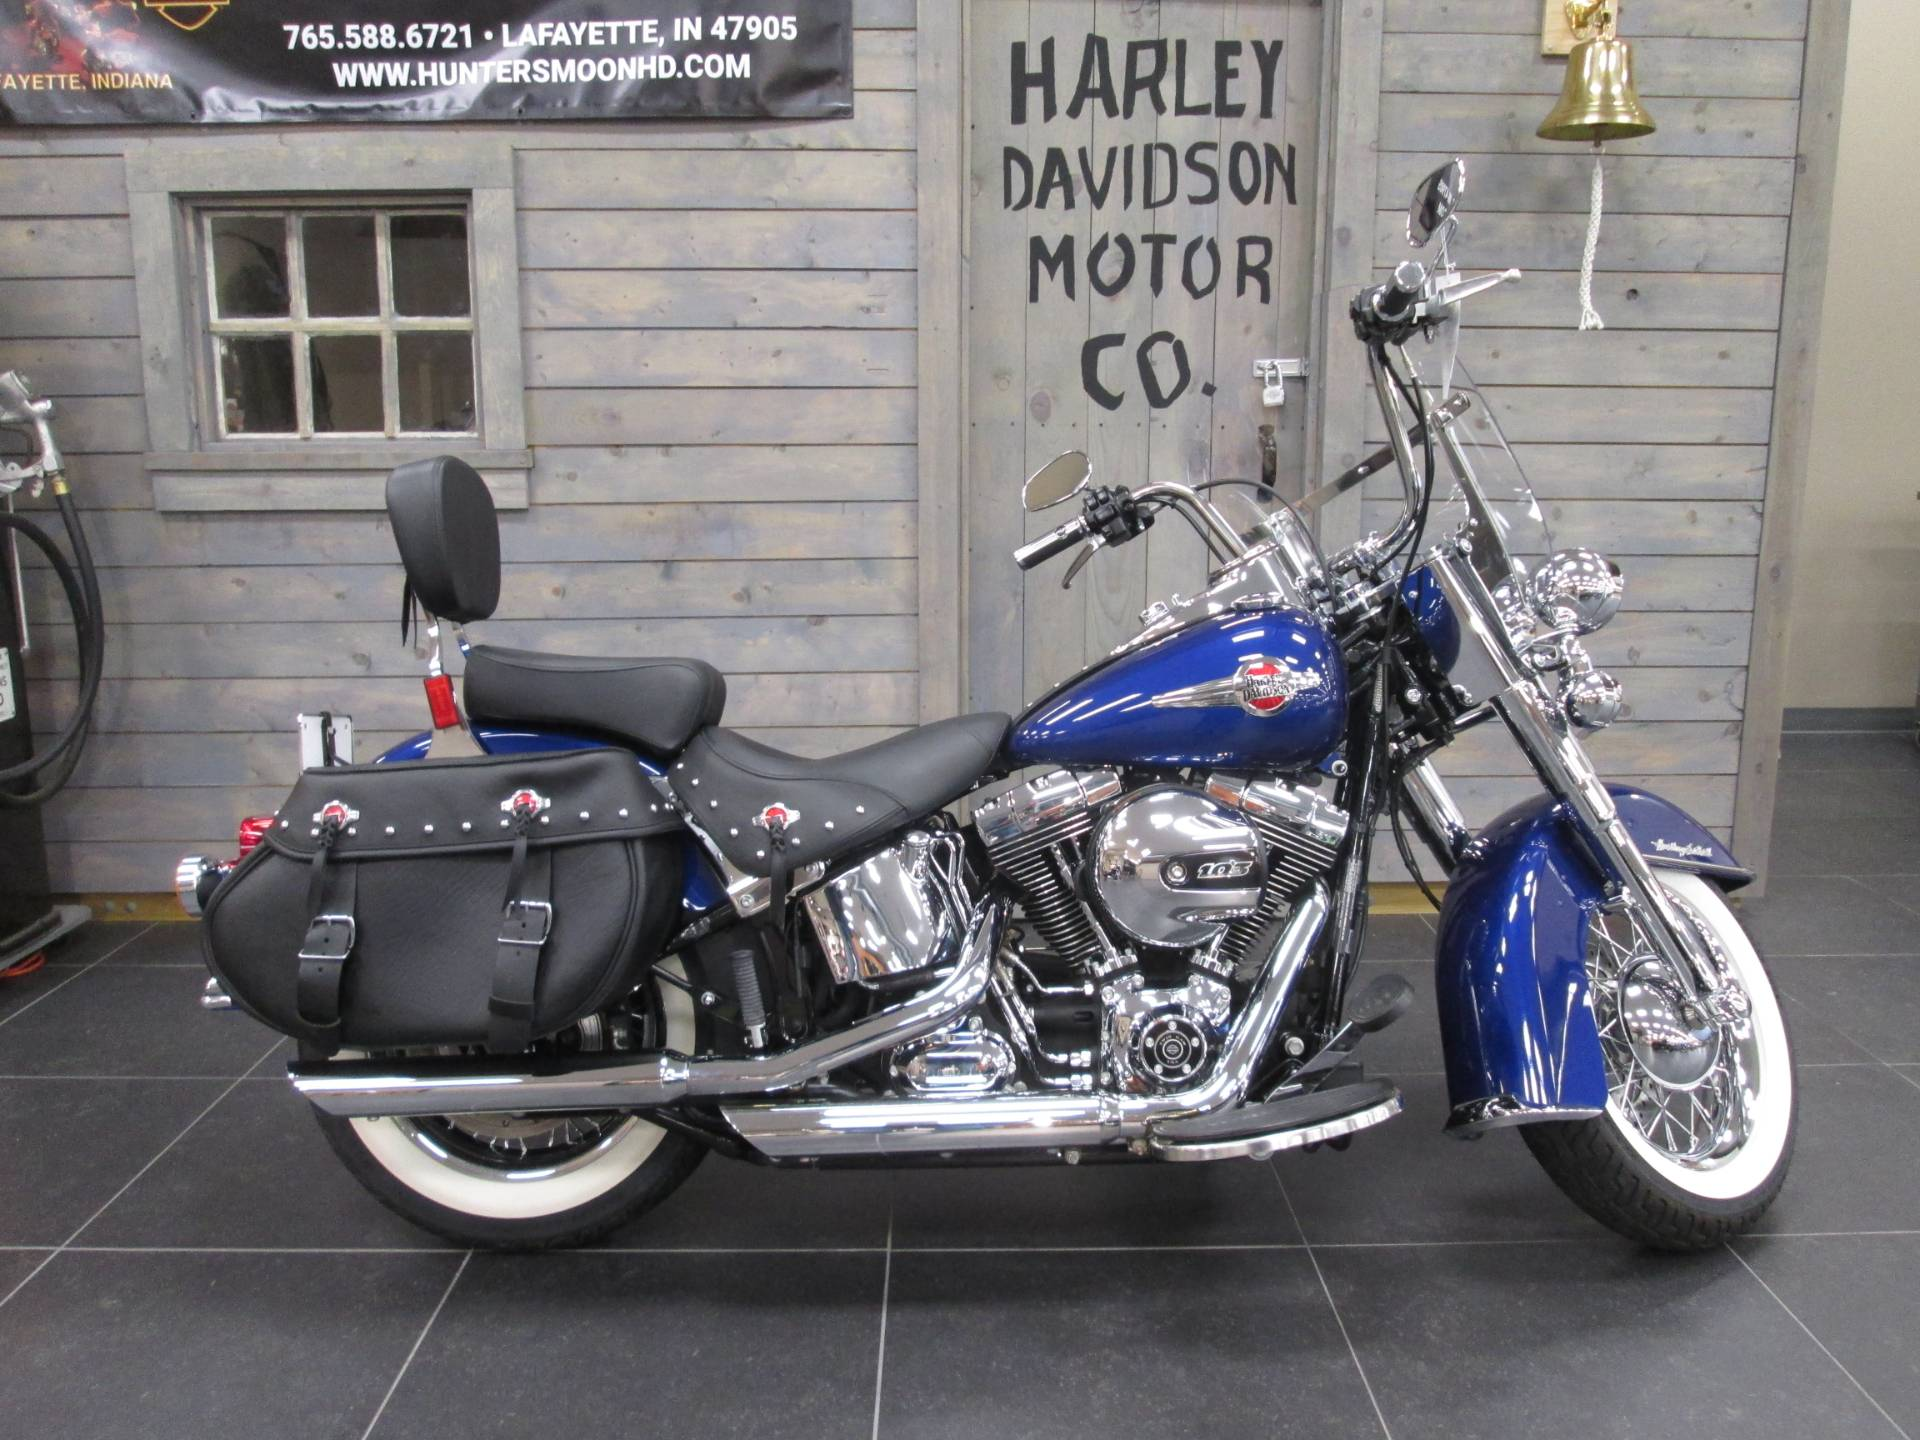 2016 Harley-Davidson Heritage Softail® Classic in Lafayette, Indiana - Photo 1